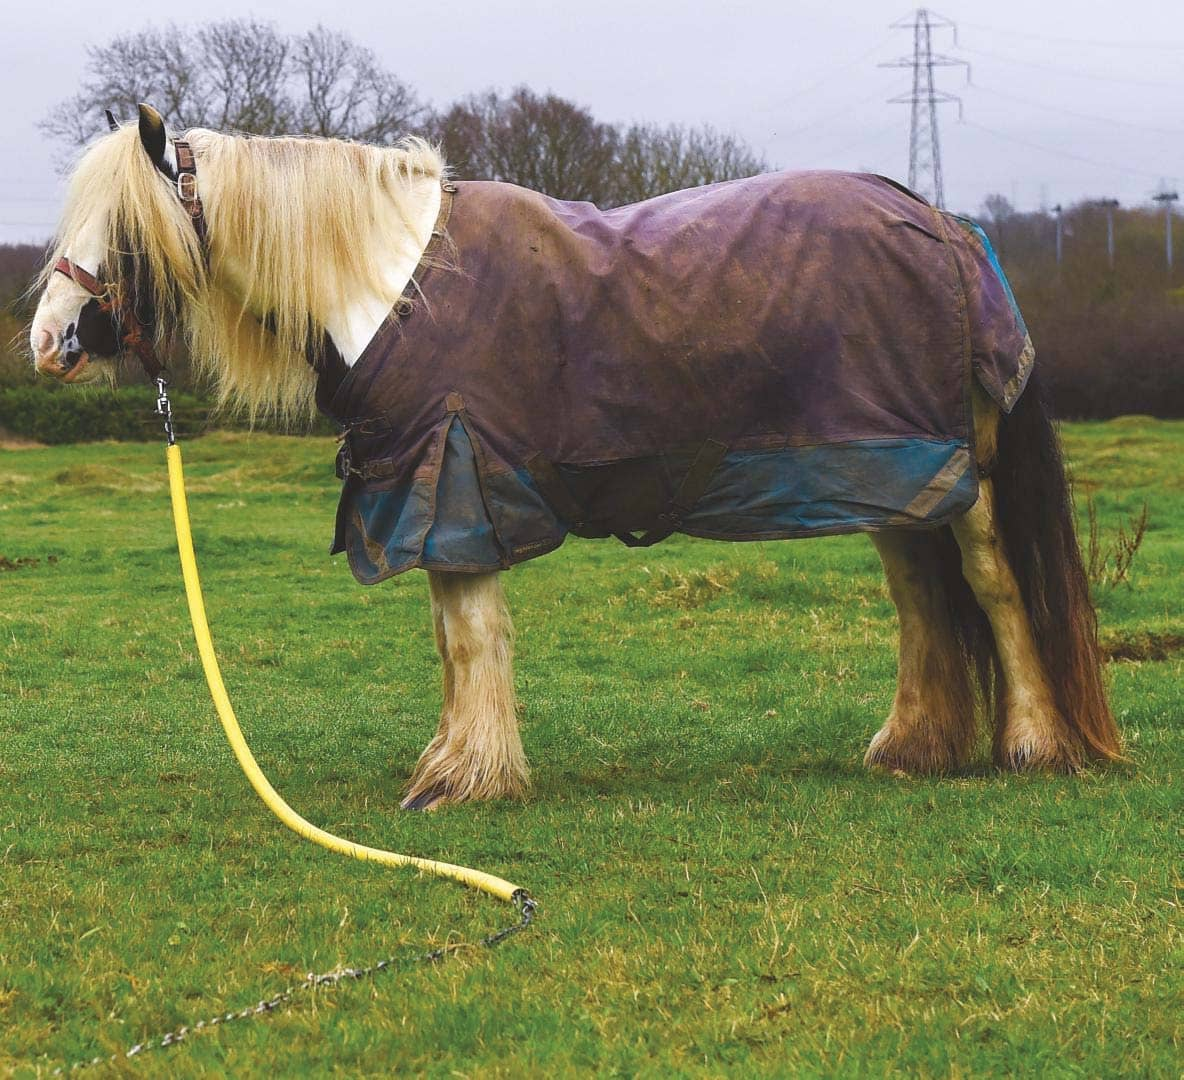 Could you rehome a rescue horse?